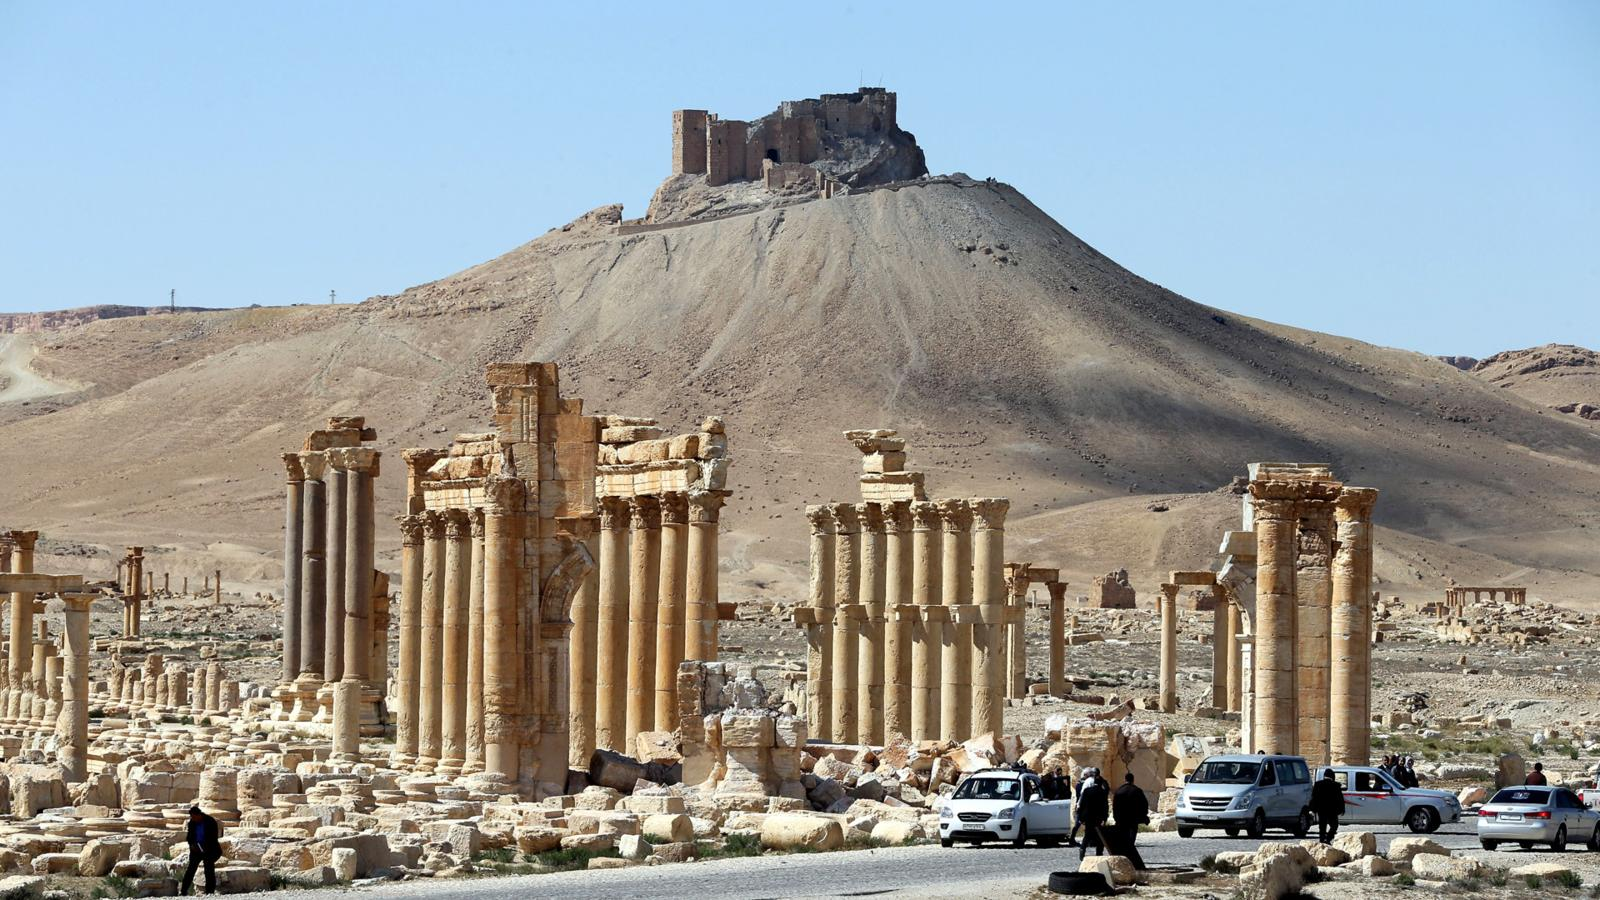 006 - SYRIA-CULTURE-CONFLICT-HERITAGE-PALMYRA